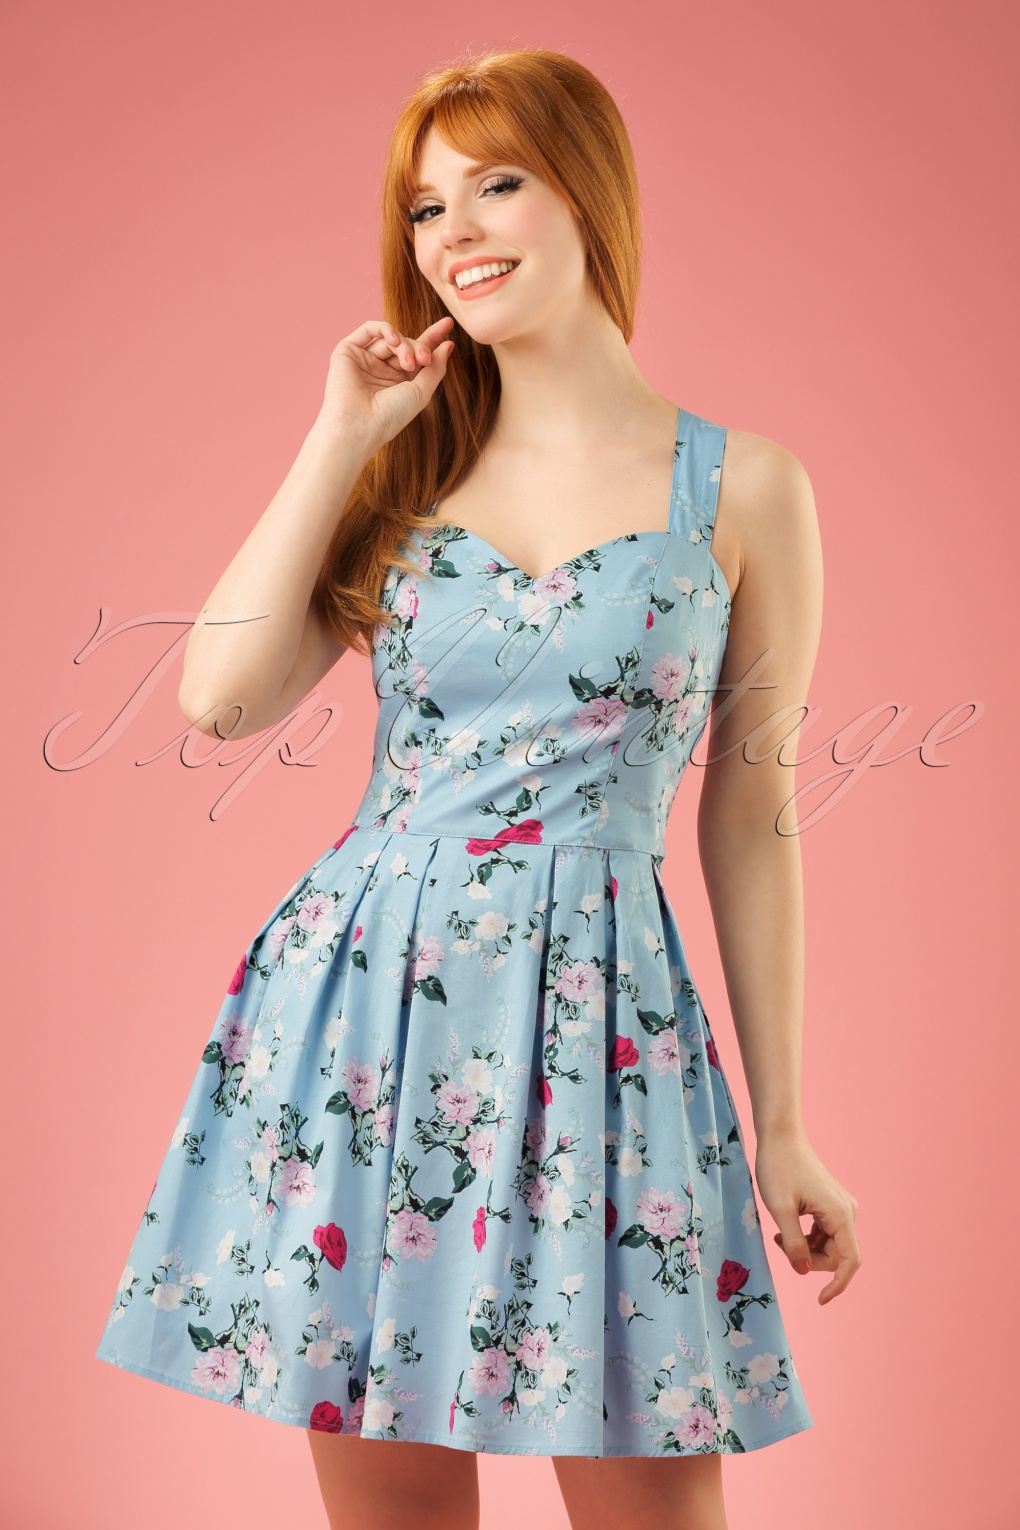 1940s Pinup Dresses for Sale 50s Belinda Floral Mini Dress in Blue £25.01 AT vintagedancer.com